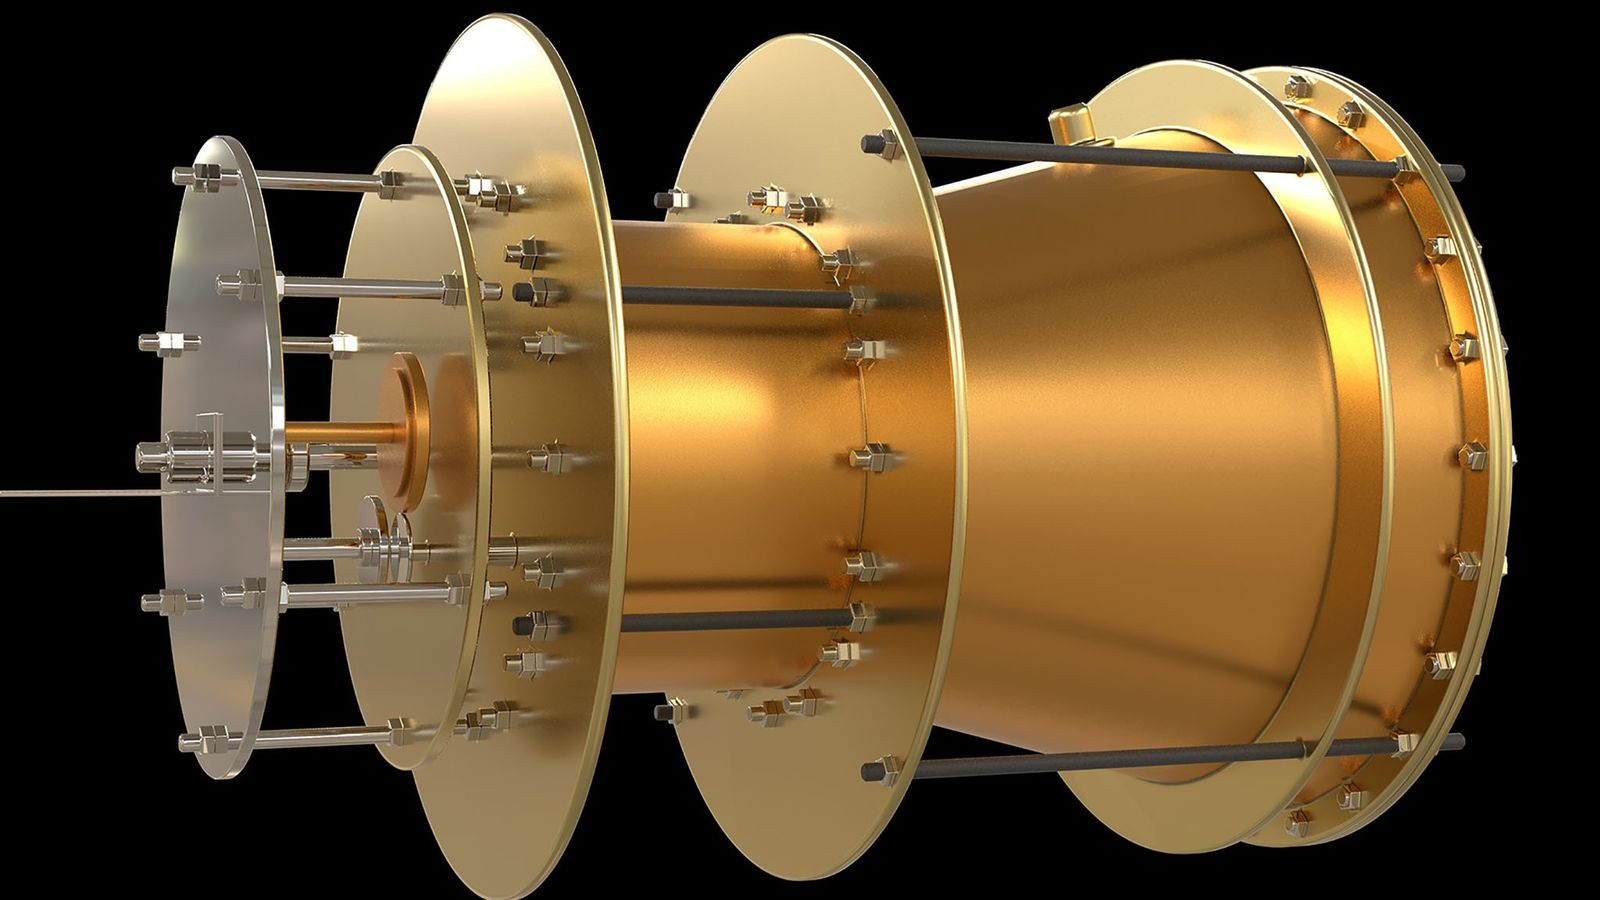 An illustration shows what an EmDrive looks like.